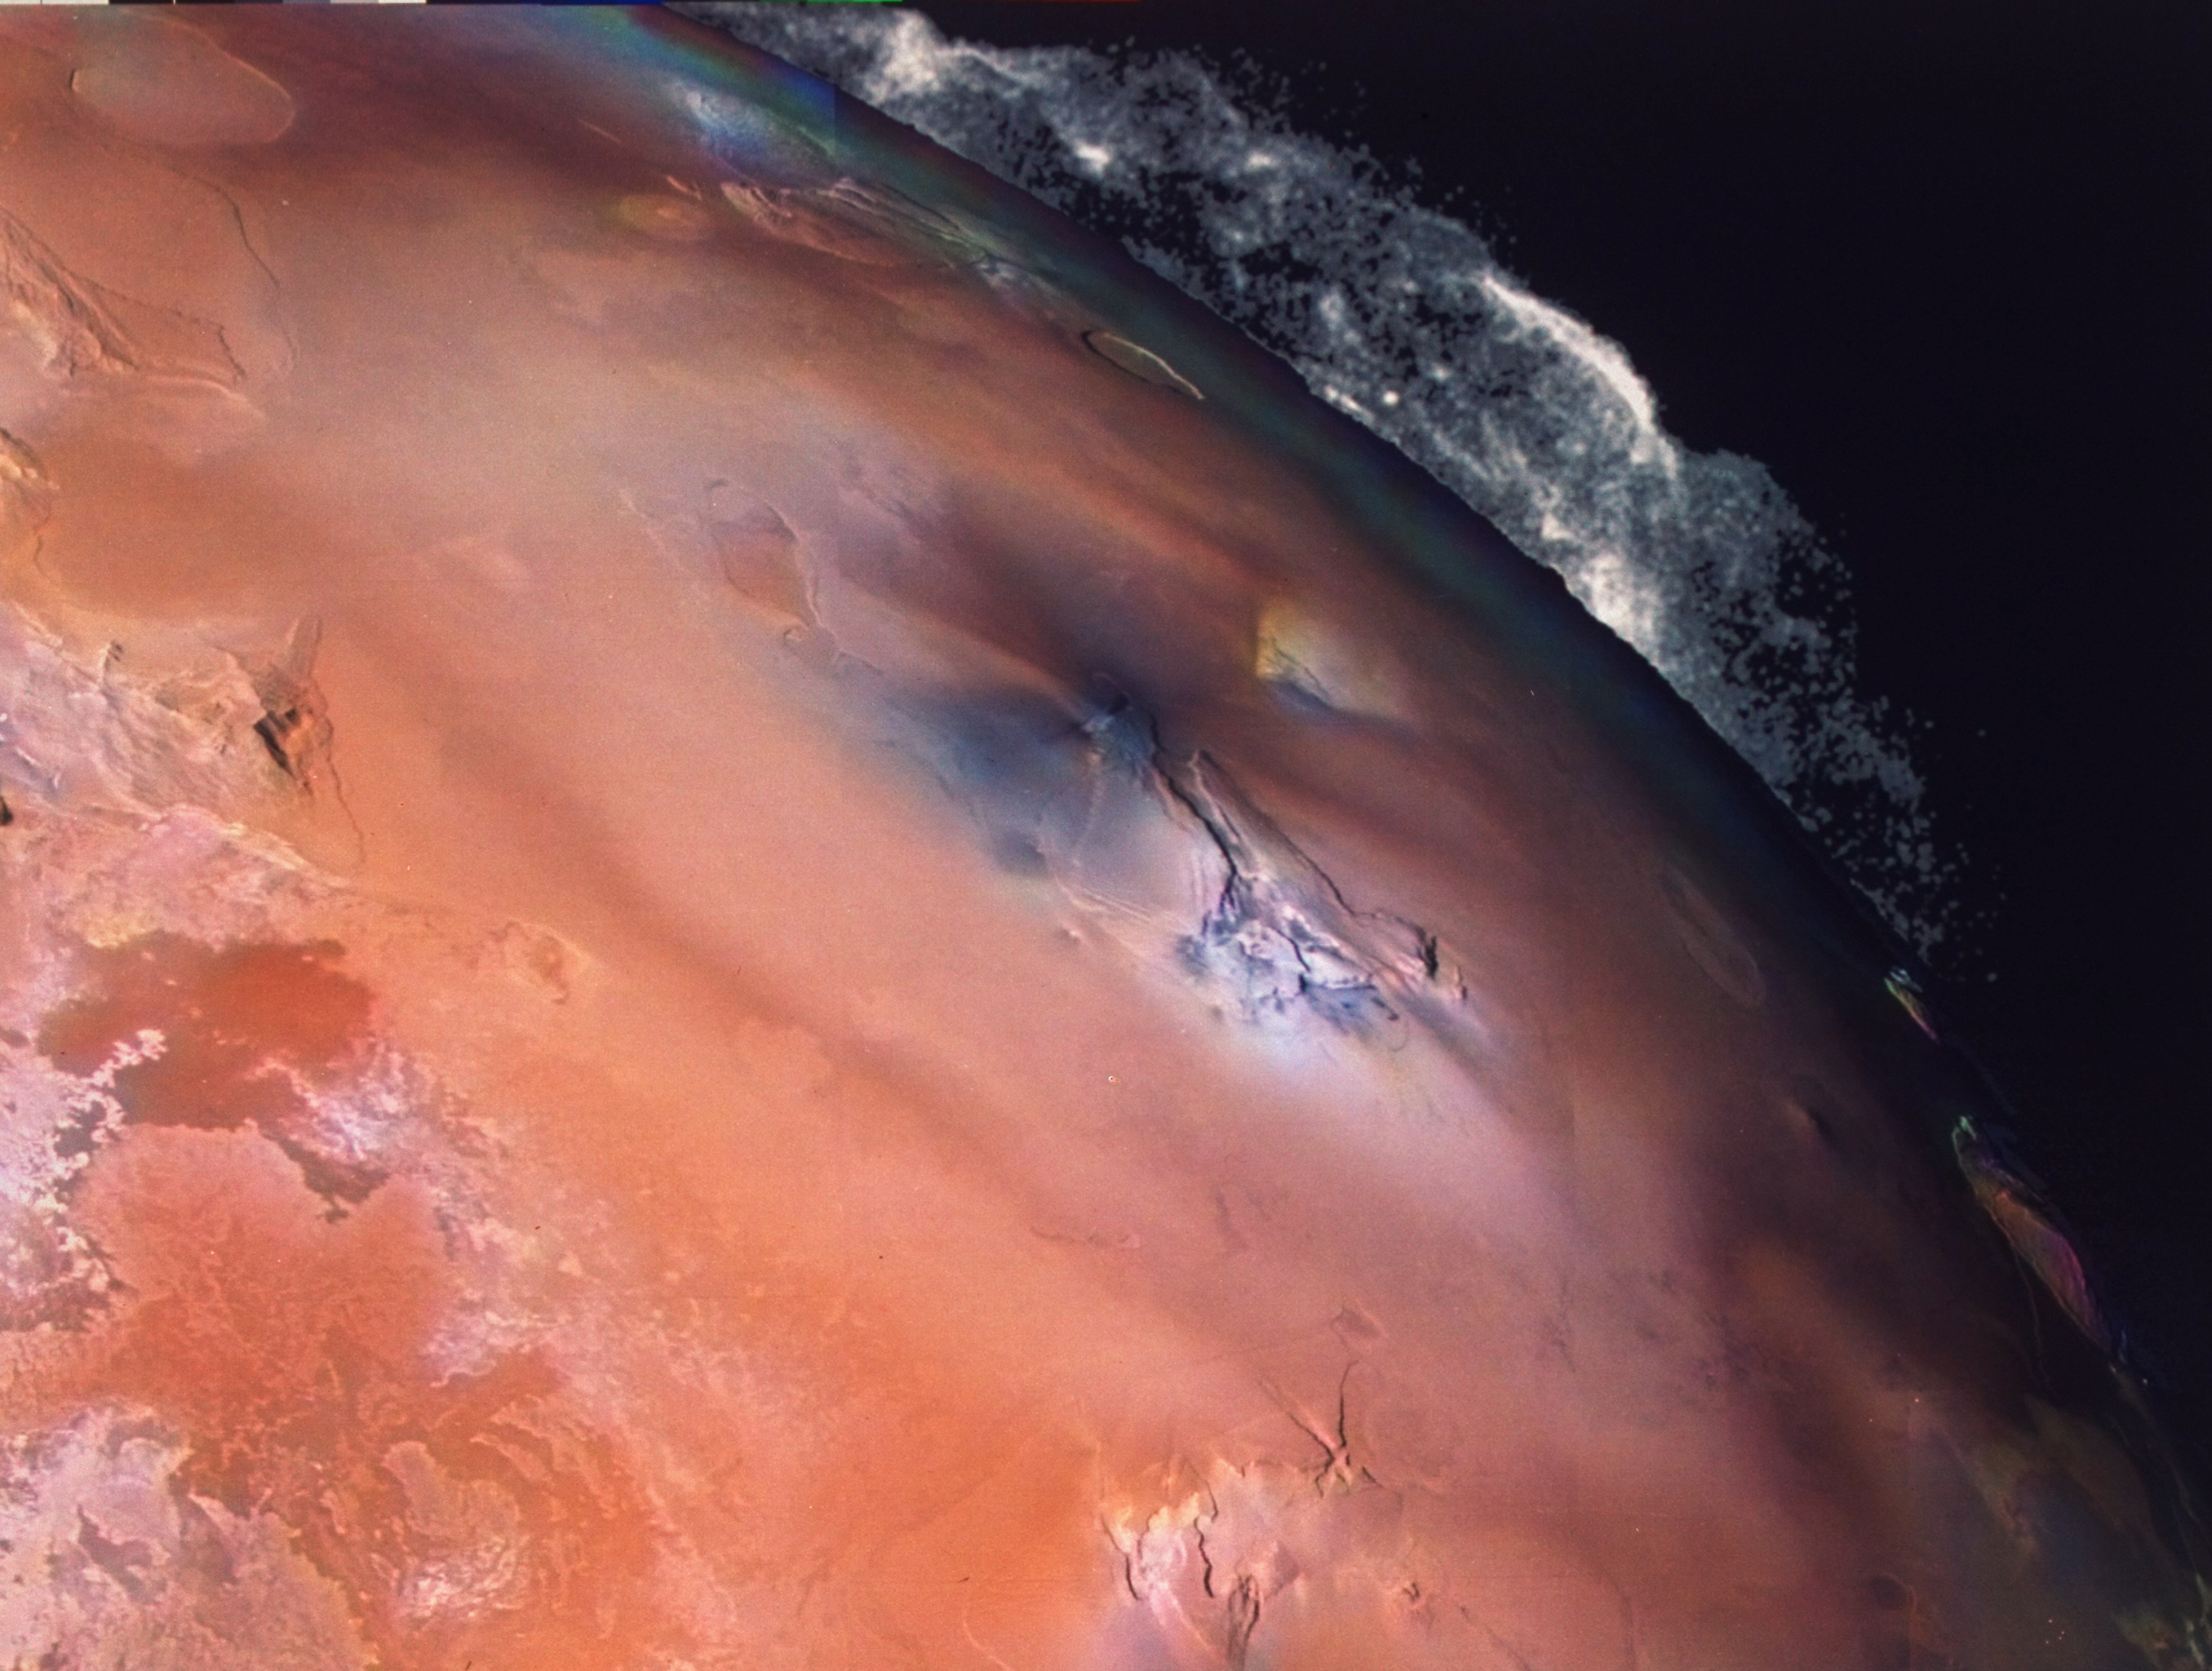 View of volcanic eruptions of Pele on Jupiter's moon Io taken from the Voyager 2 spacecraft.